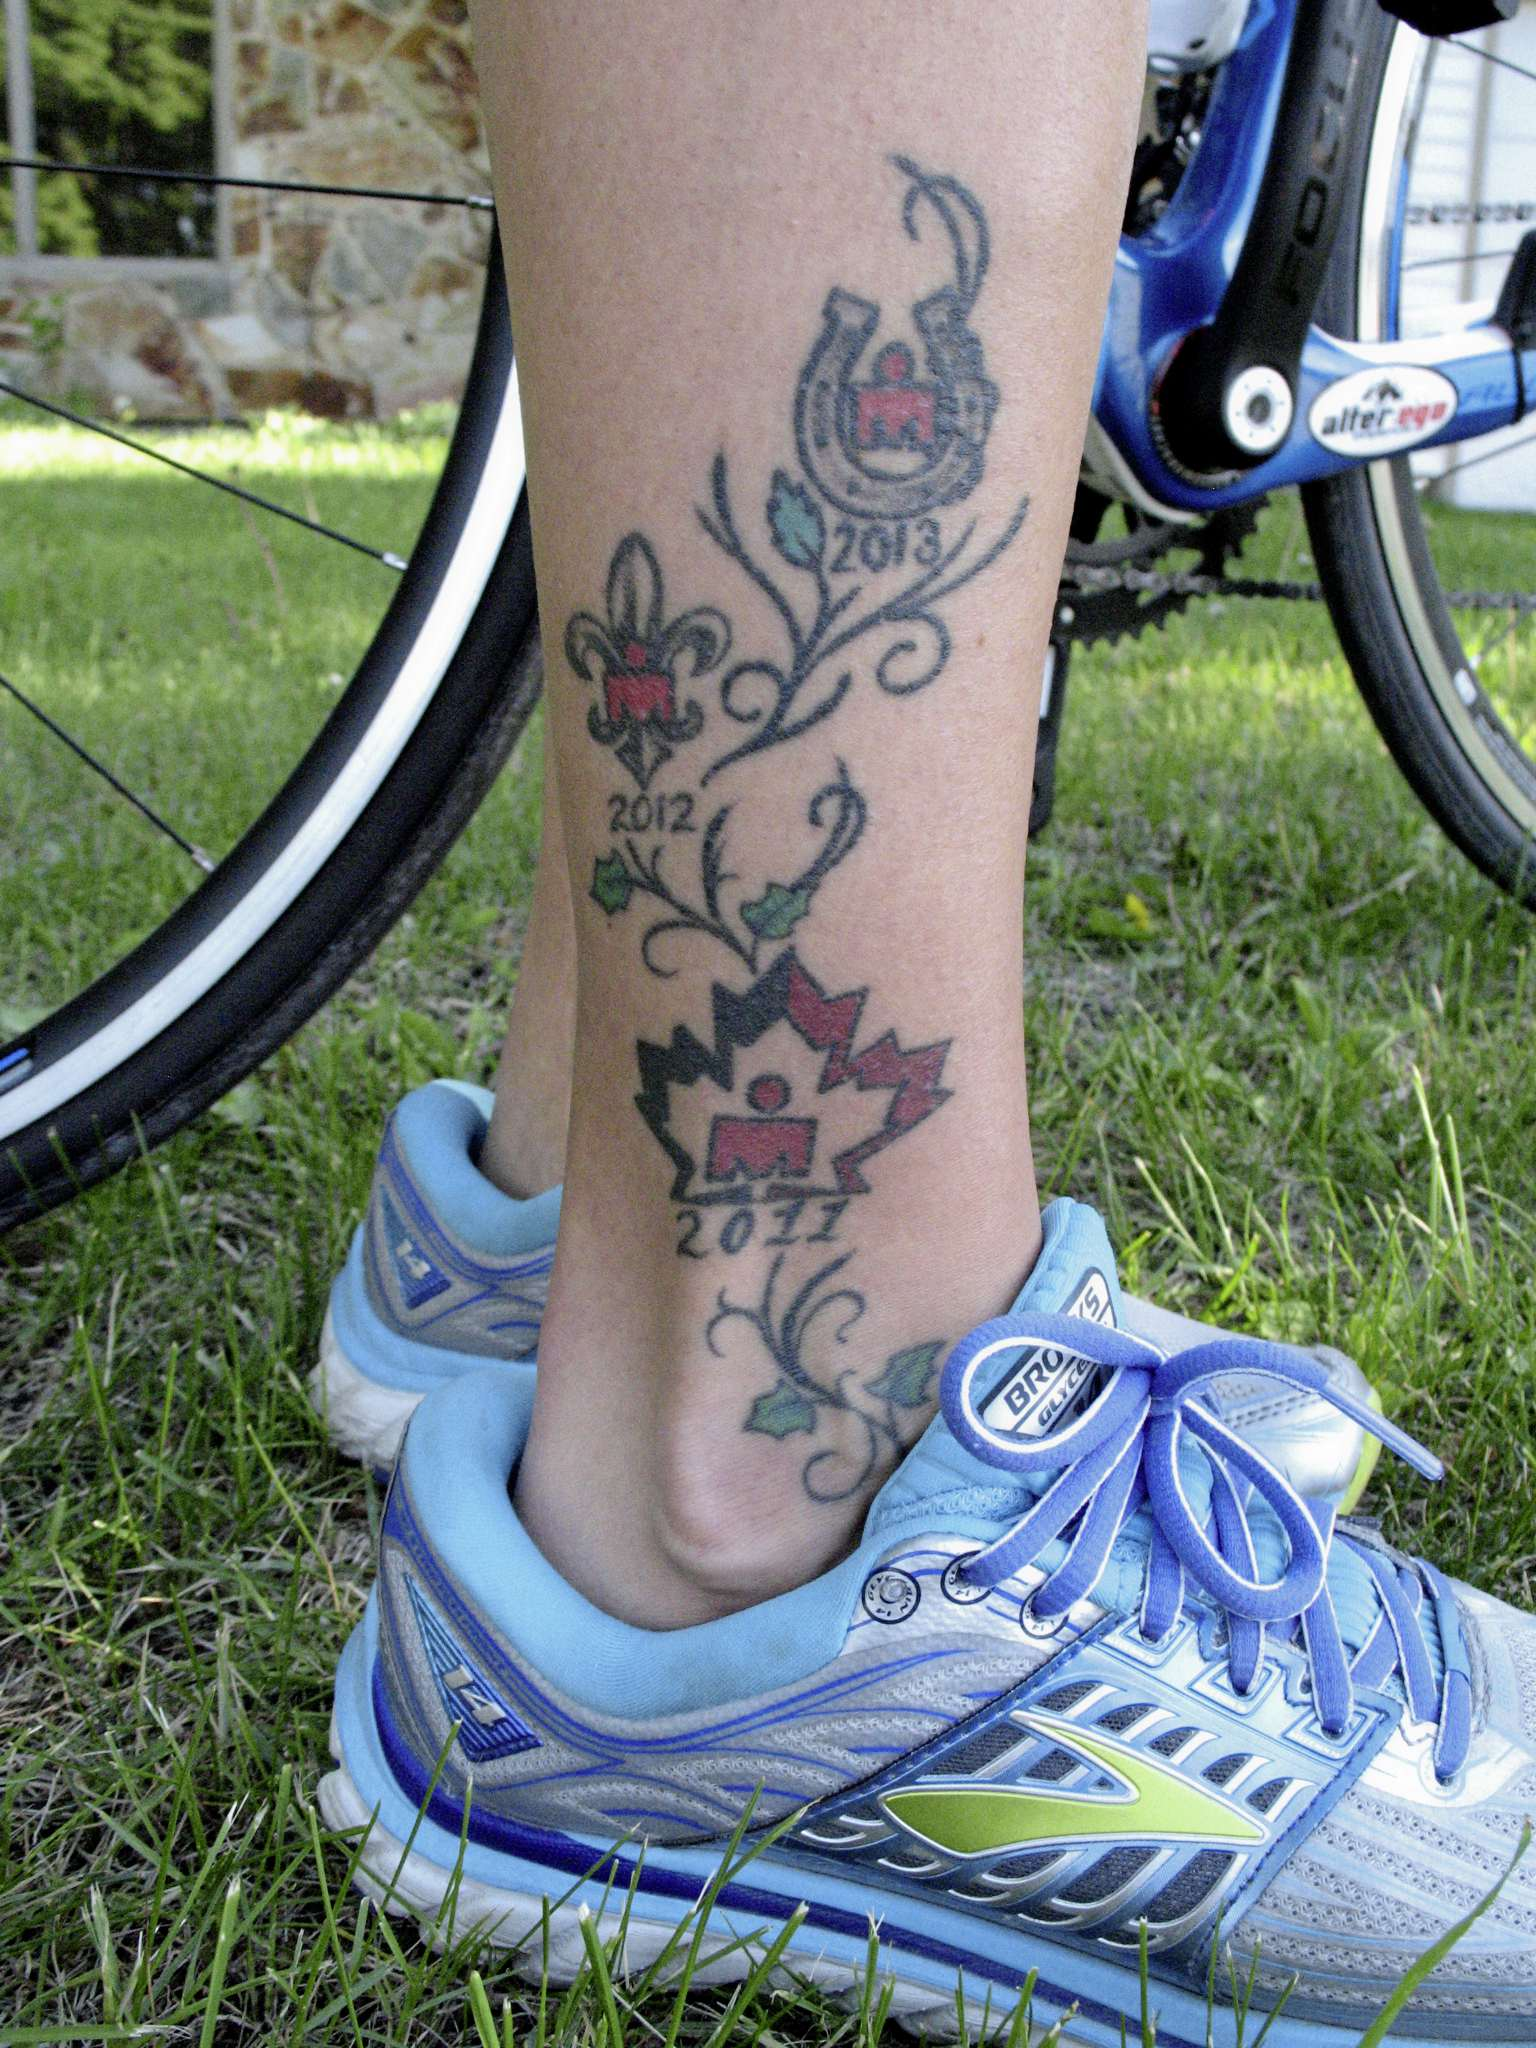 Elaine Ross has tattoos representing her appearances in Ironman competitions. (SIMON FULLER/CANSTAR NEWS/THE LANCE)